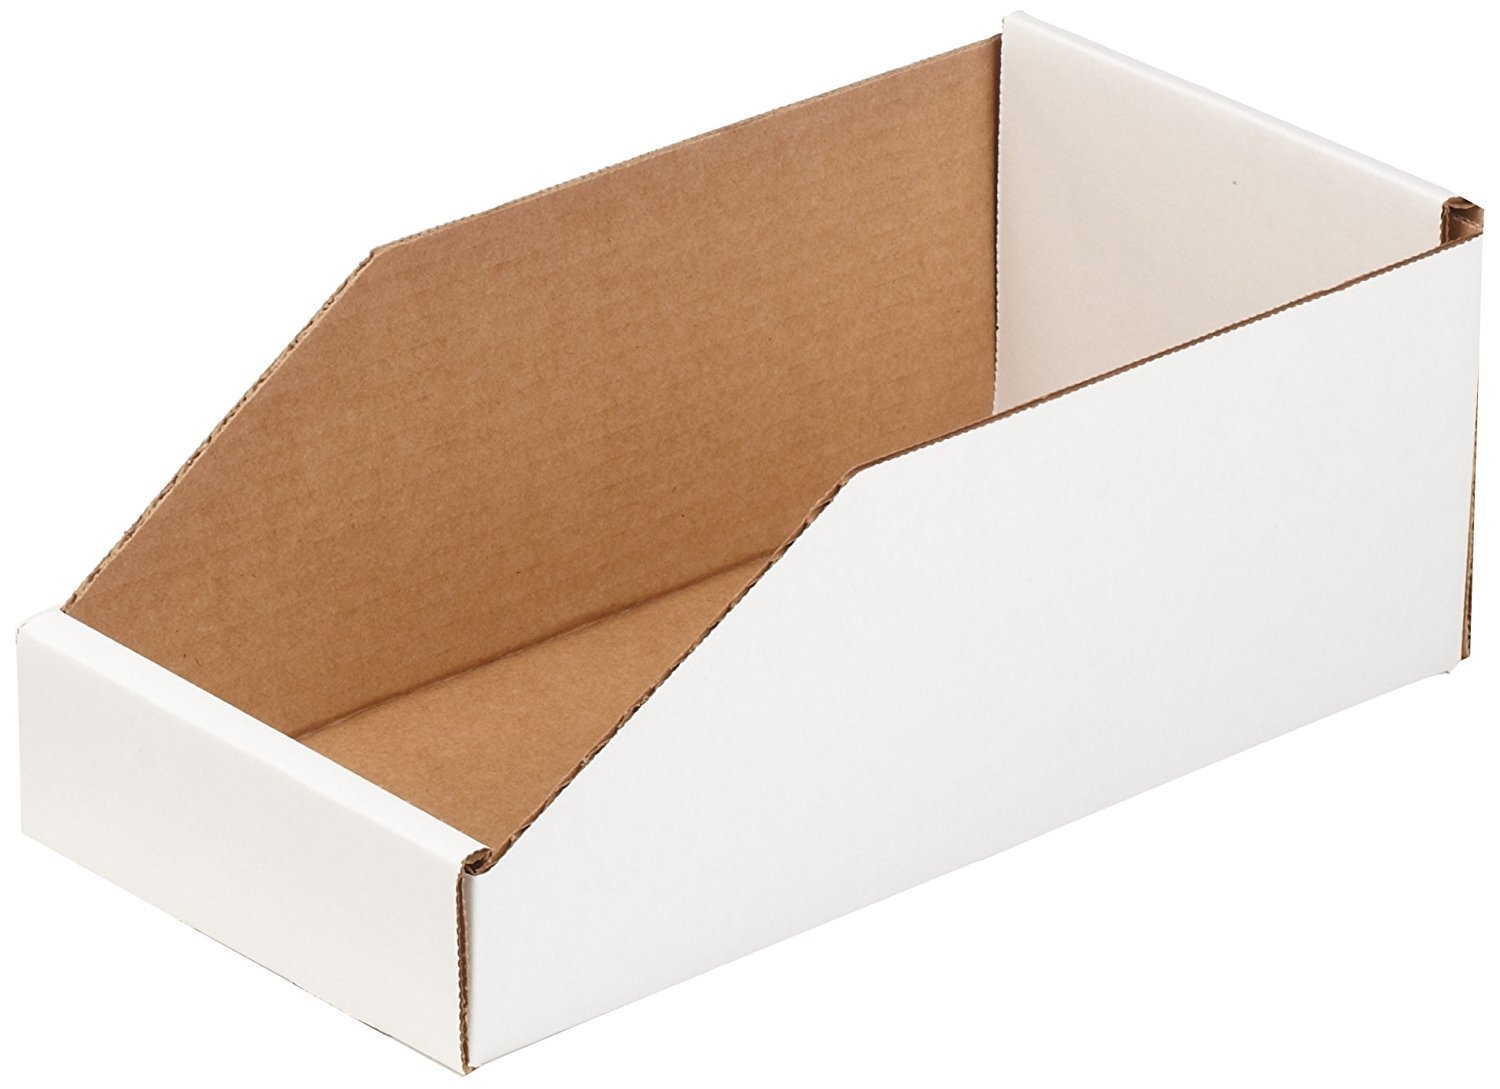 Aviditi BINMT612 Corrugated Open Top Bin Box, 12'' Length x 6'' Width x 4-1/2'' Height, Oyster White (Case of 50) (2 CASES OF 50)